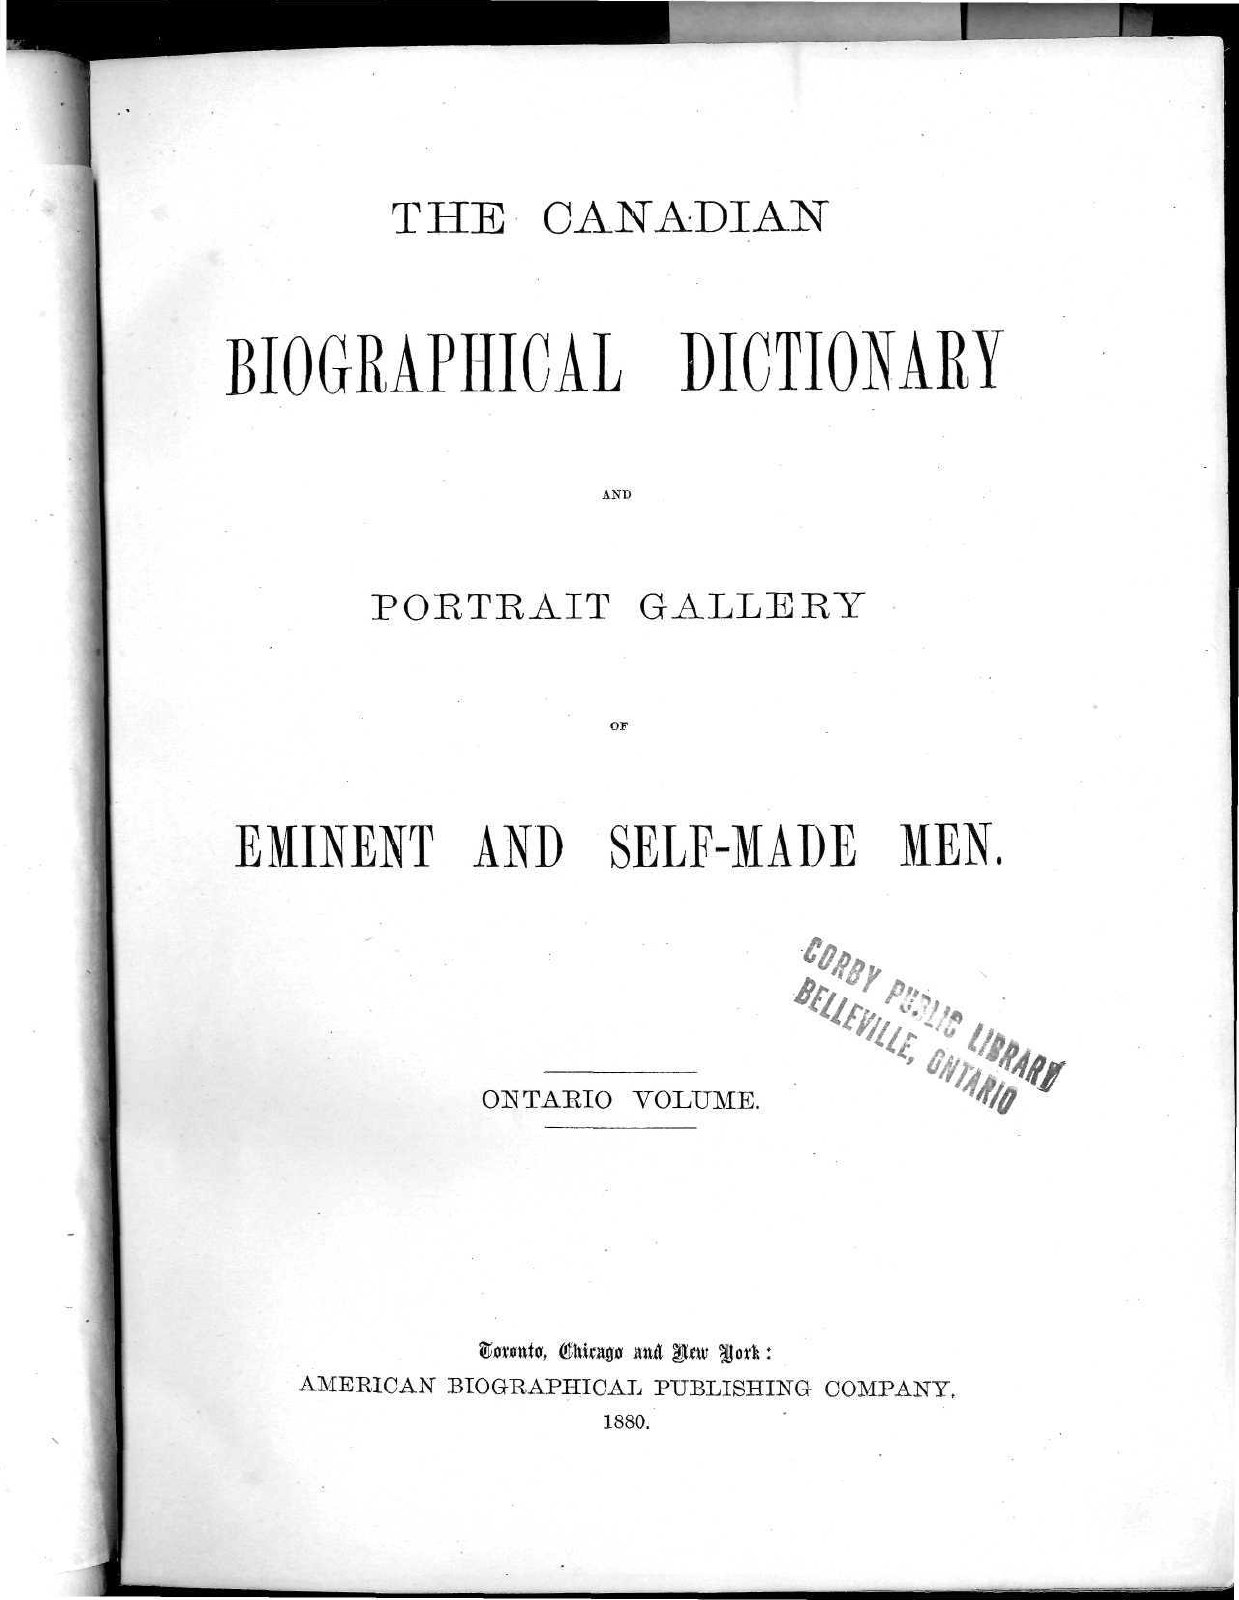 The Canadian Biographical Dictionary and Portrait Gallery of Eminent and Self-Made Men - Ontario Volume